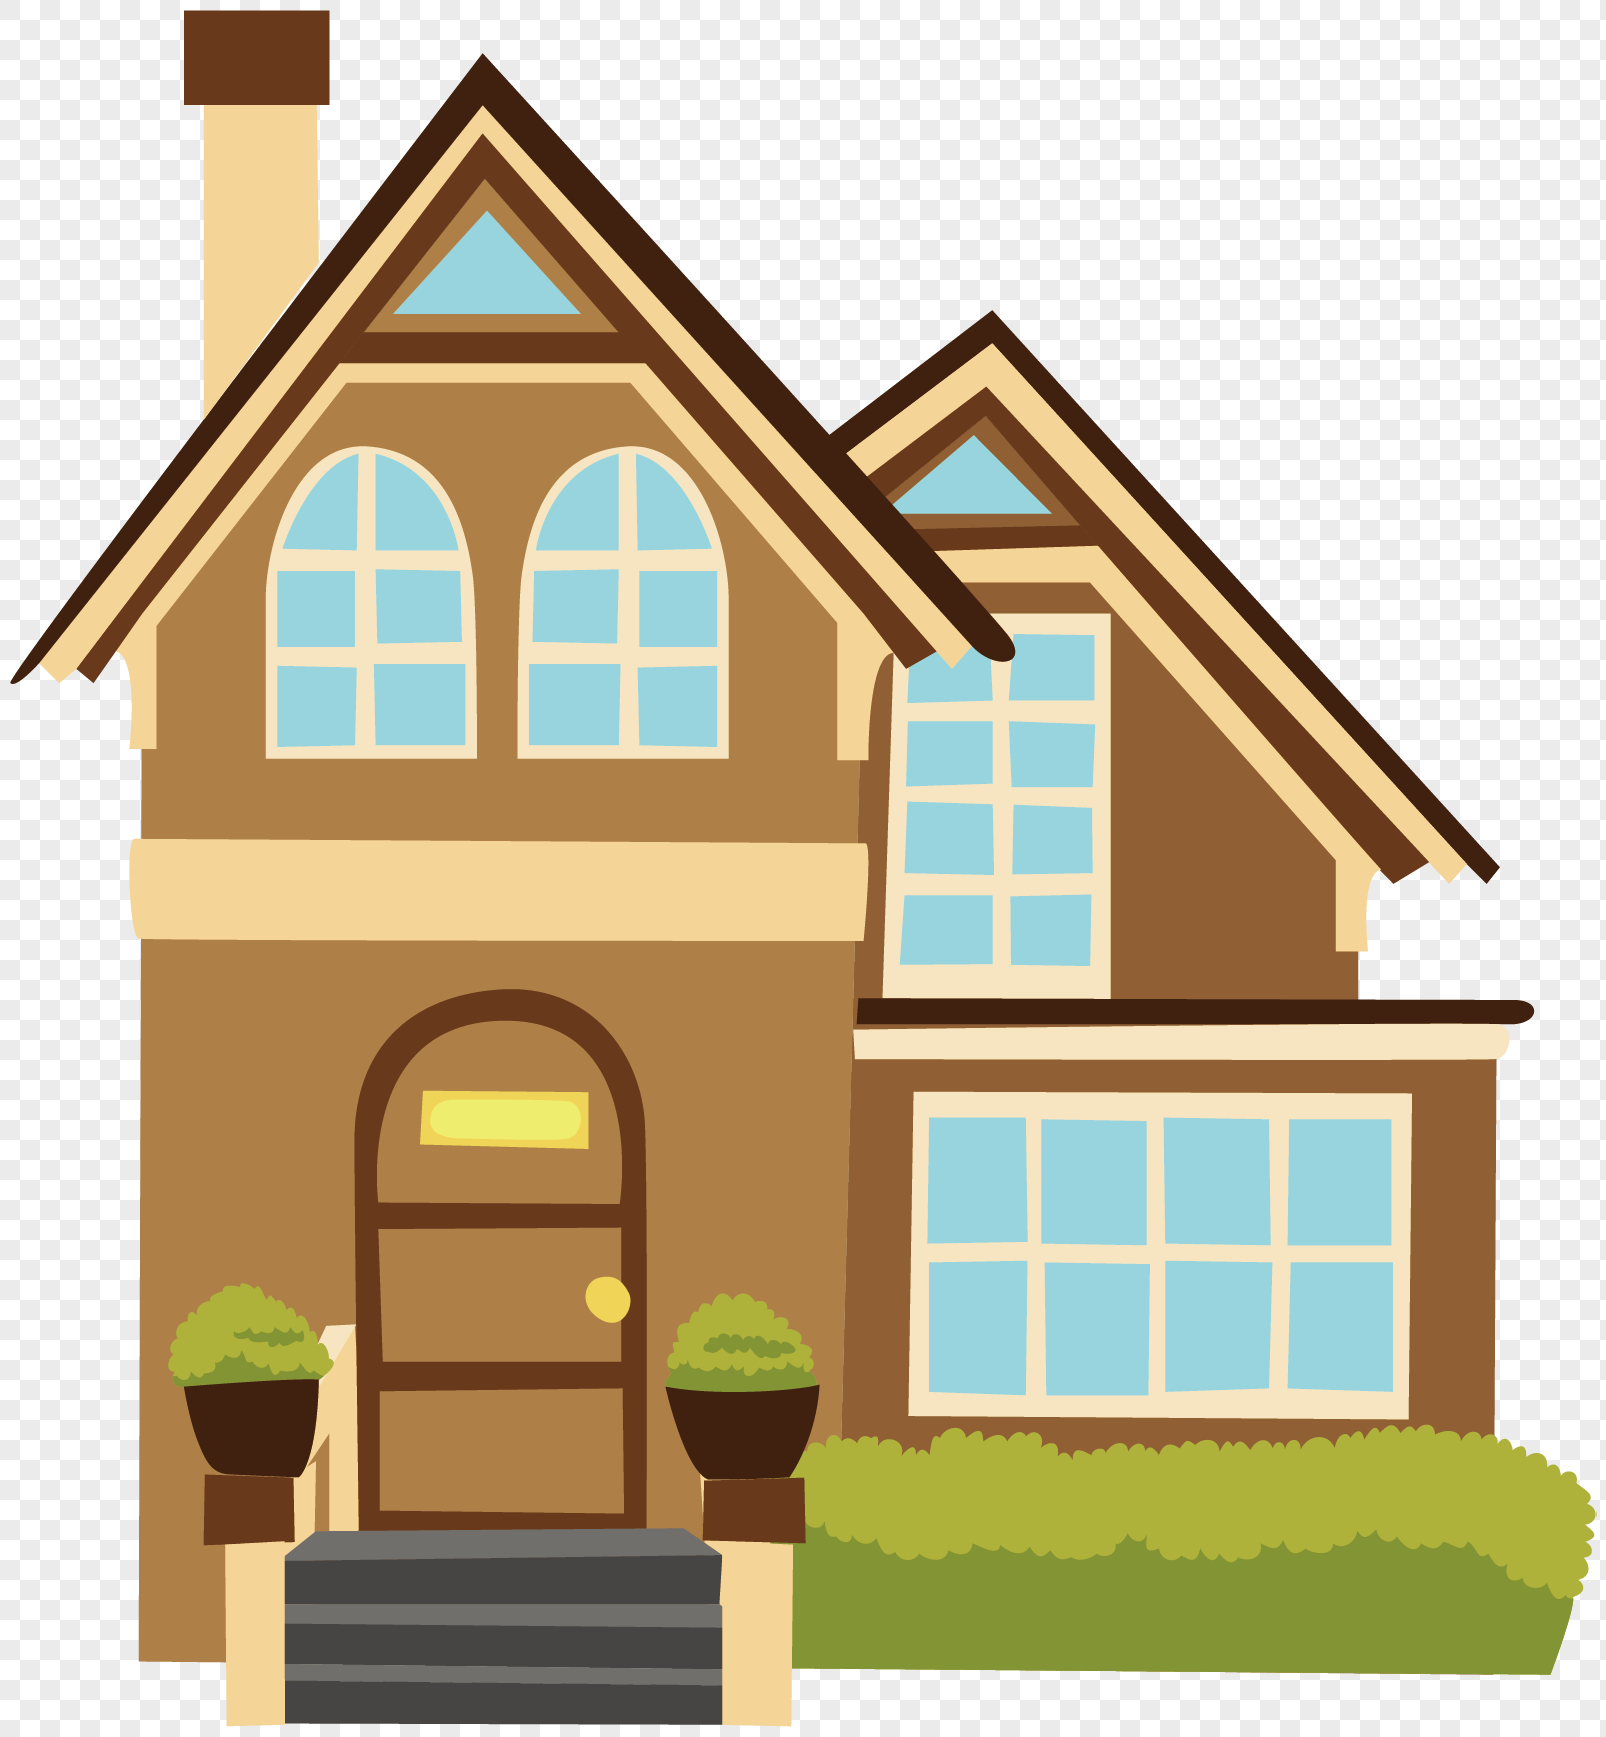 Intellectual Property Cartoon: Cartoon Villa Png Image_picture Free Download 400650322